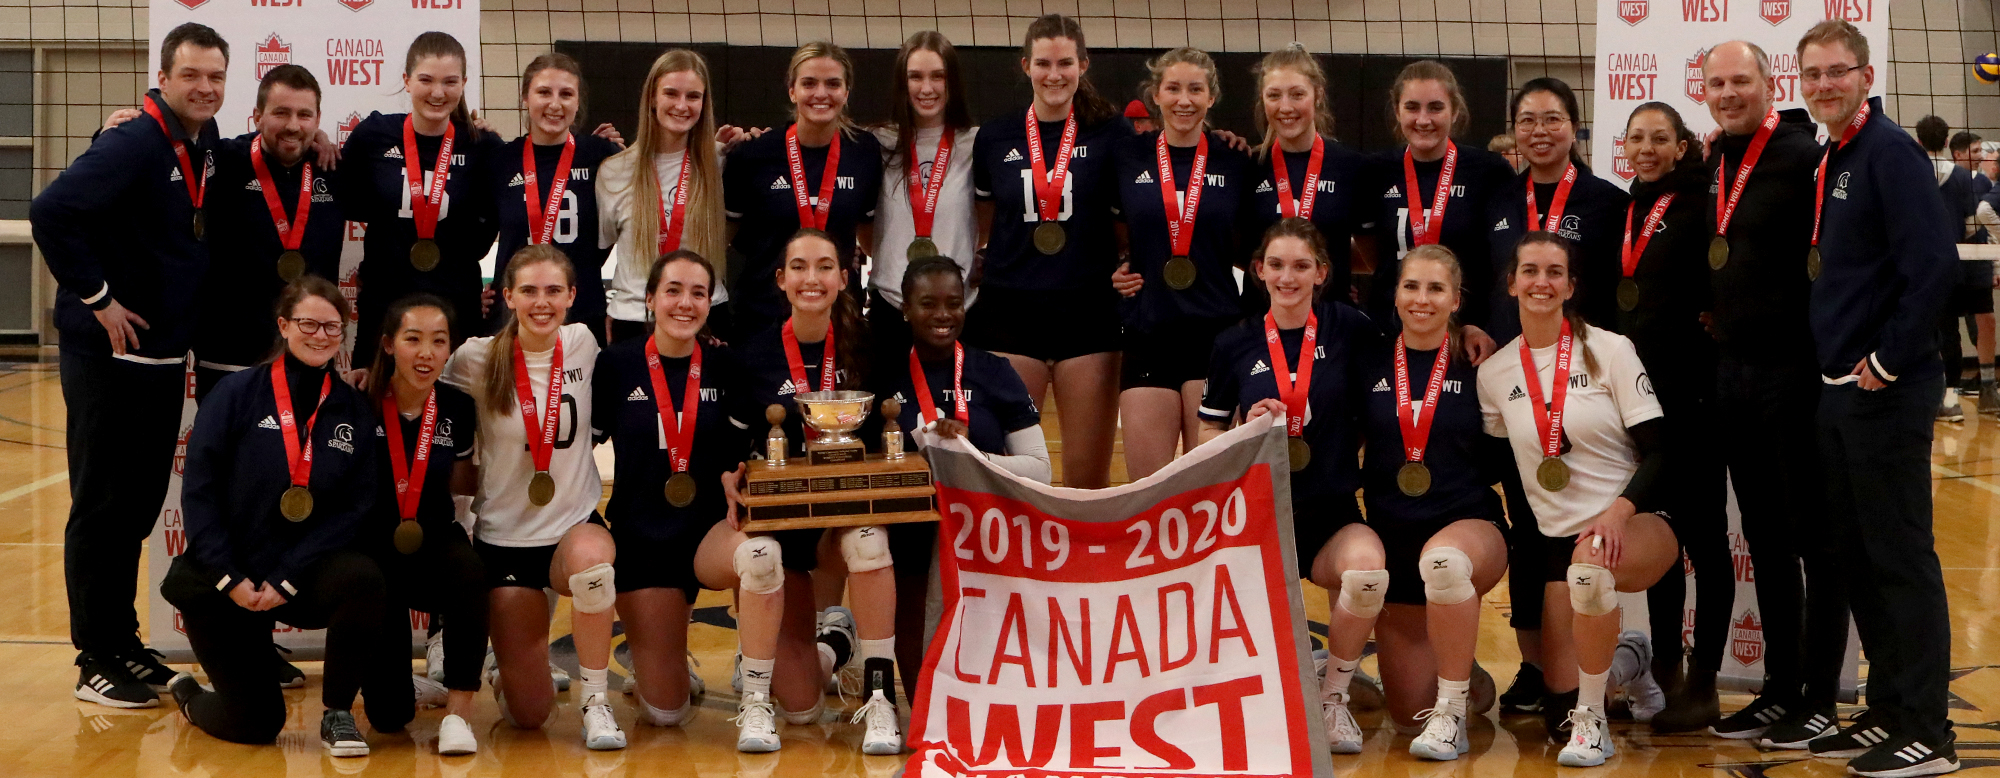 Spartans Win Second Straight Canada West Championship Trinity Western University